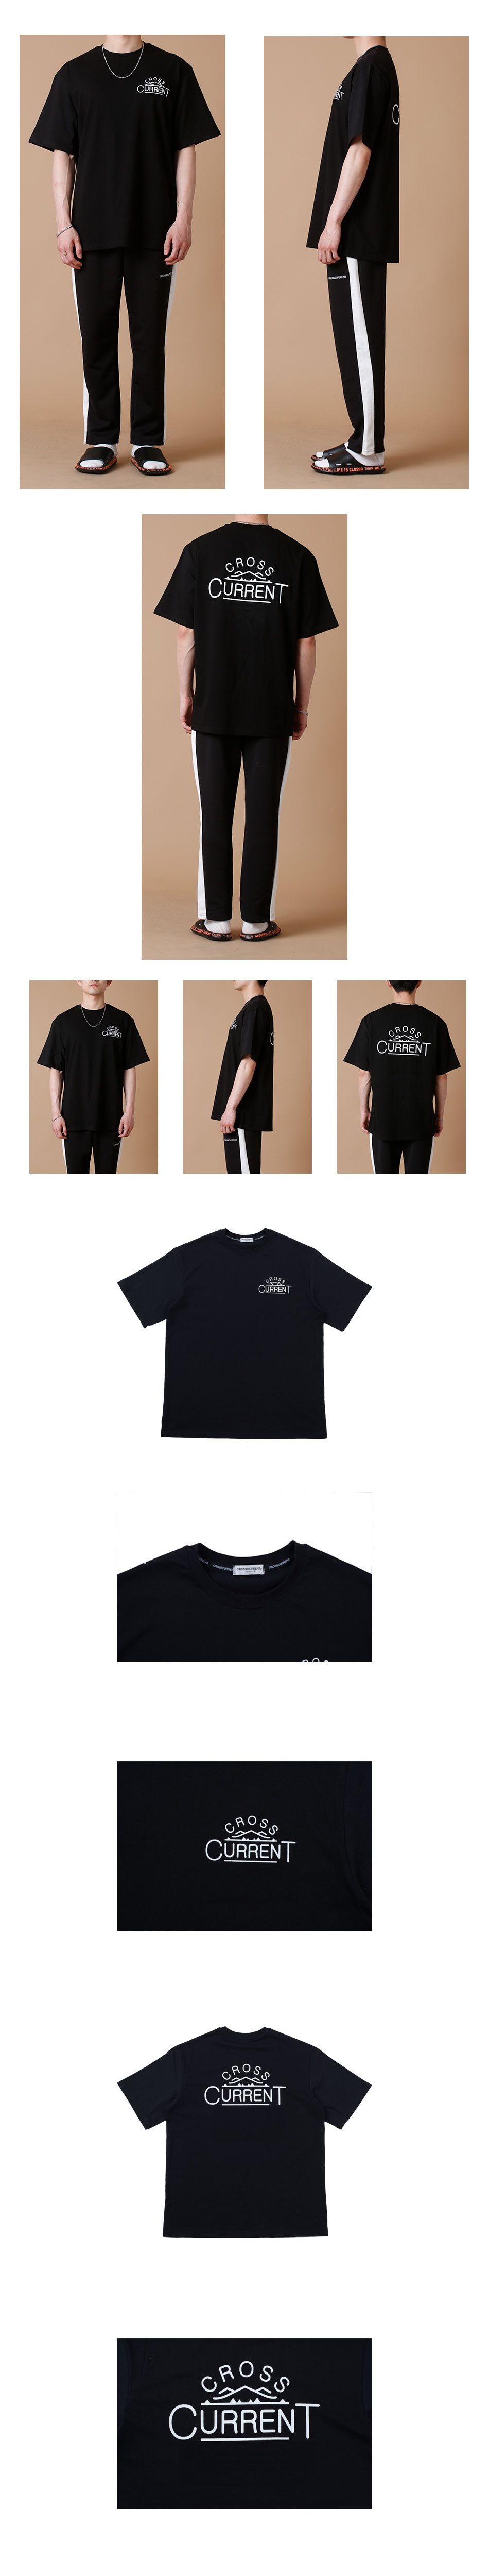 #crct00001-CCT-Mountain-Short-Sleeve-블랙950.jpg